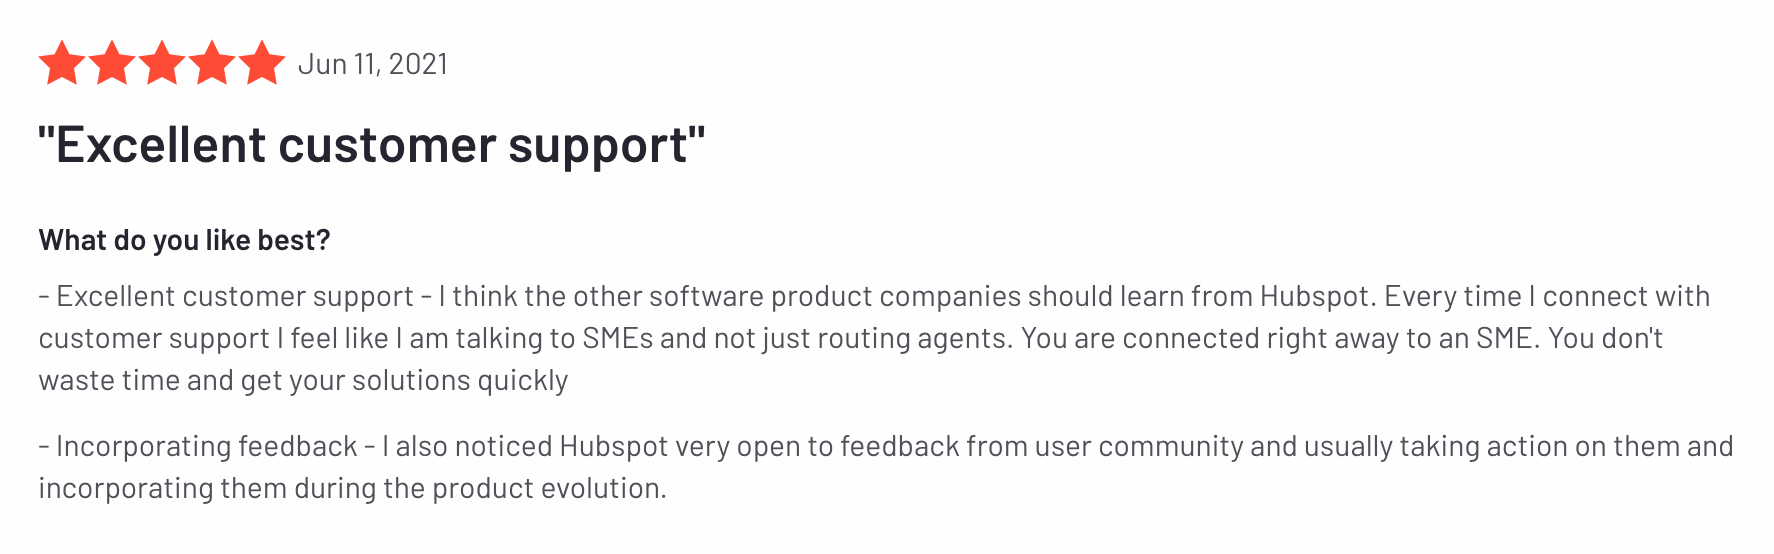 Review of HubSpot and their customer support